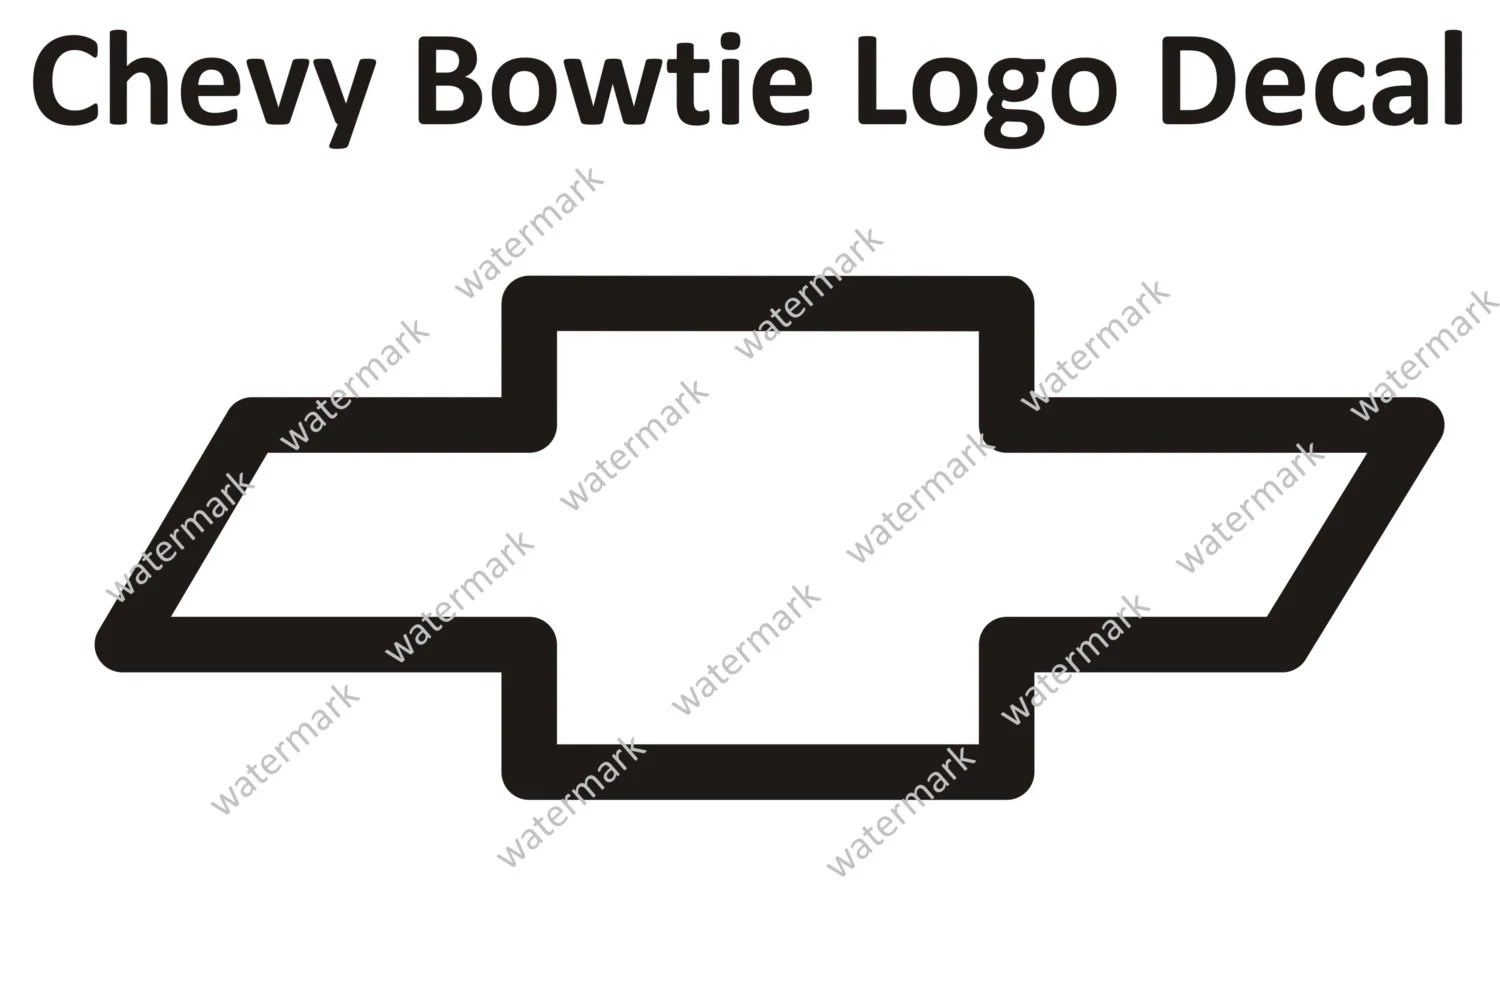 Home Chevy Bowtie Logo 1 Vinyl Decal